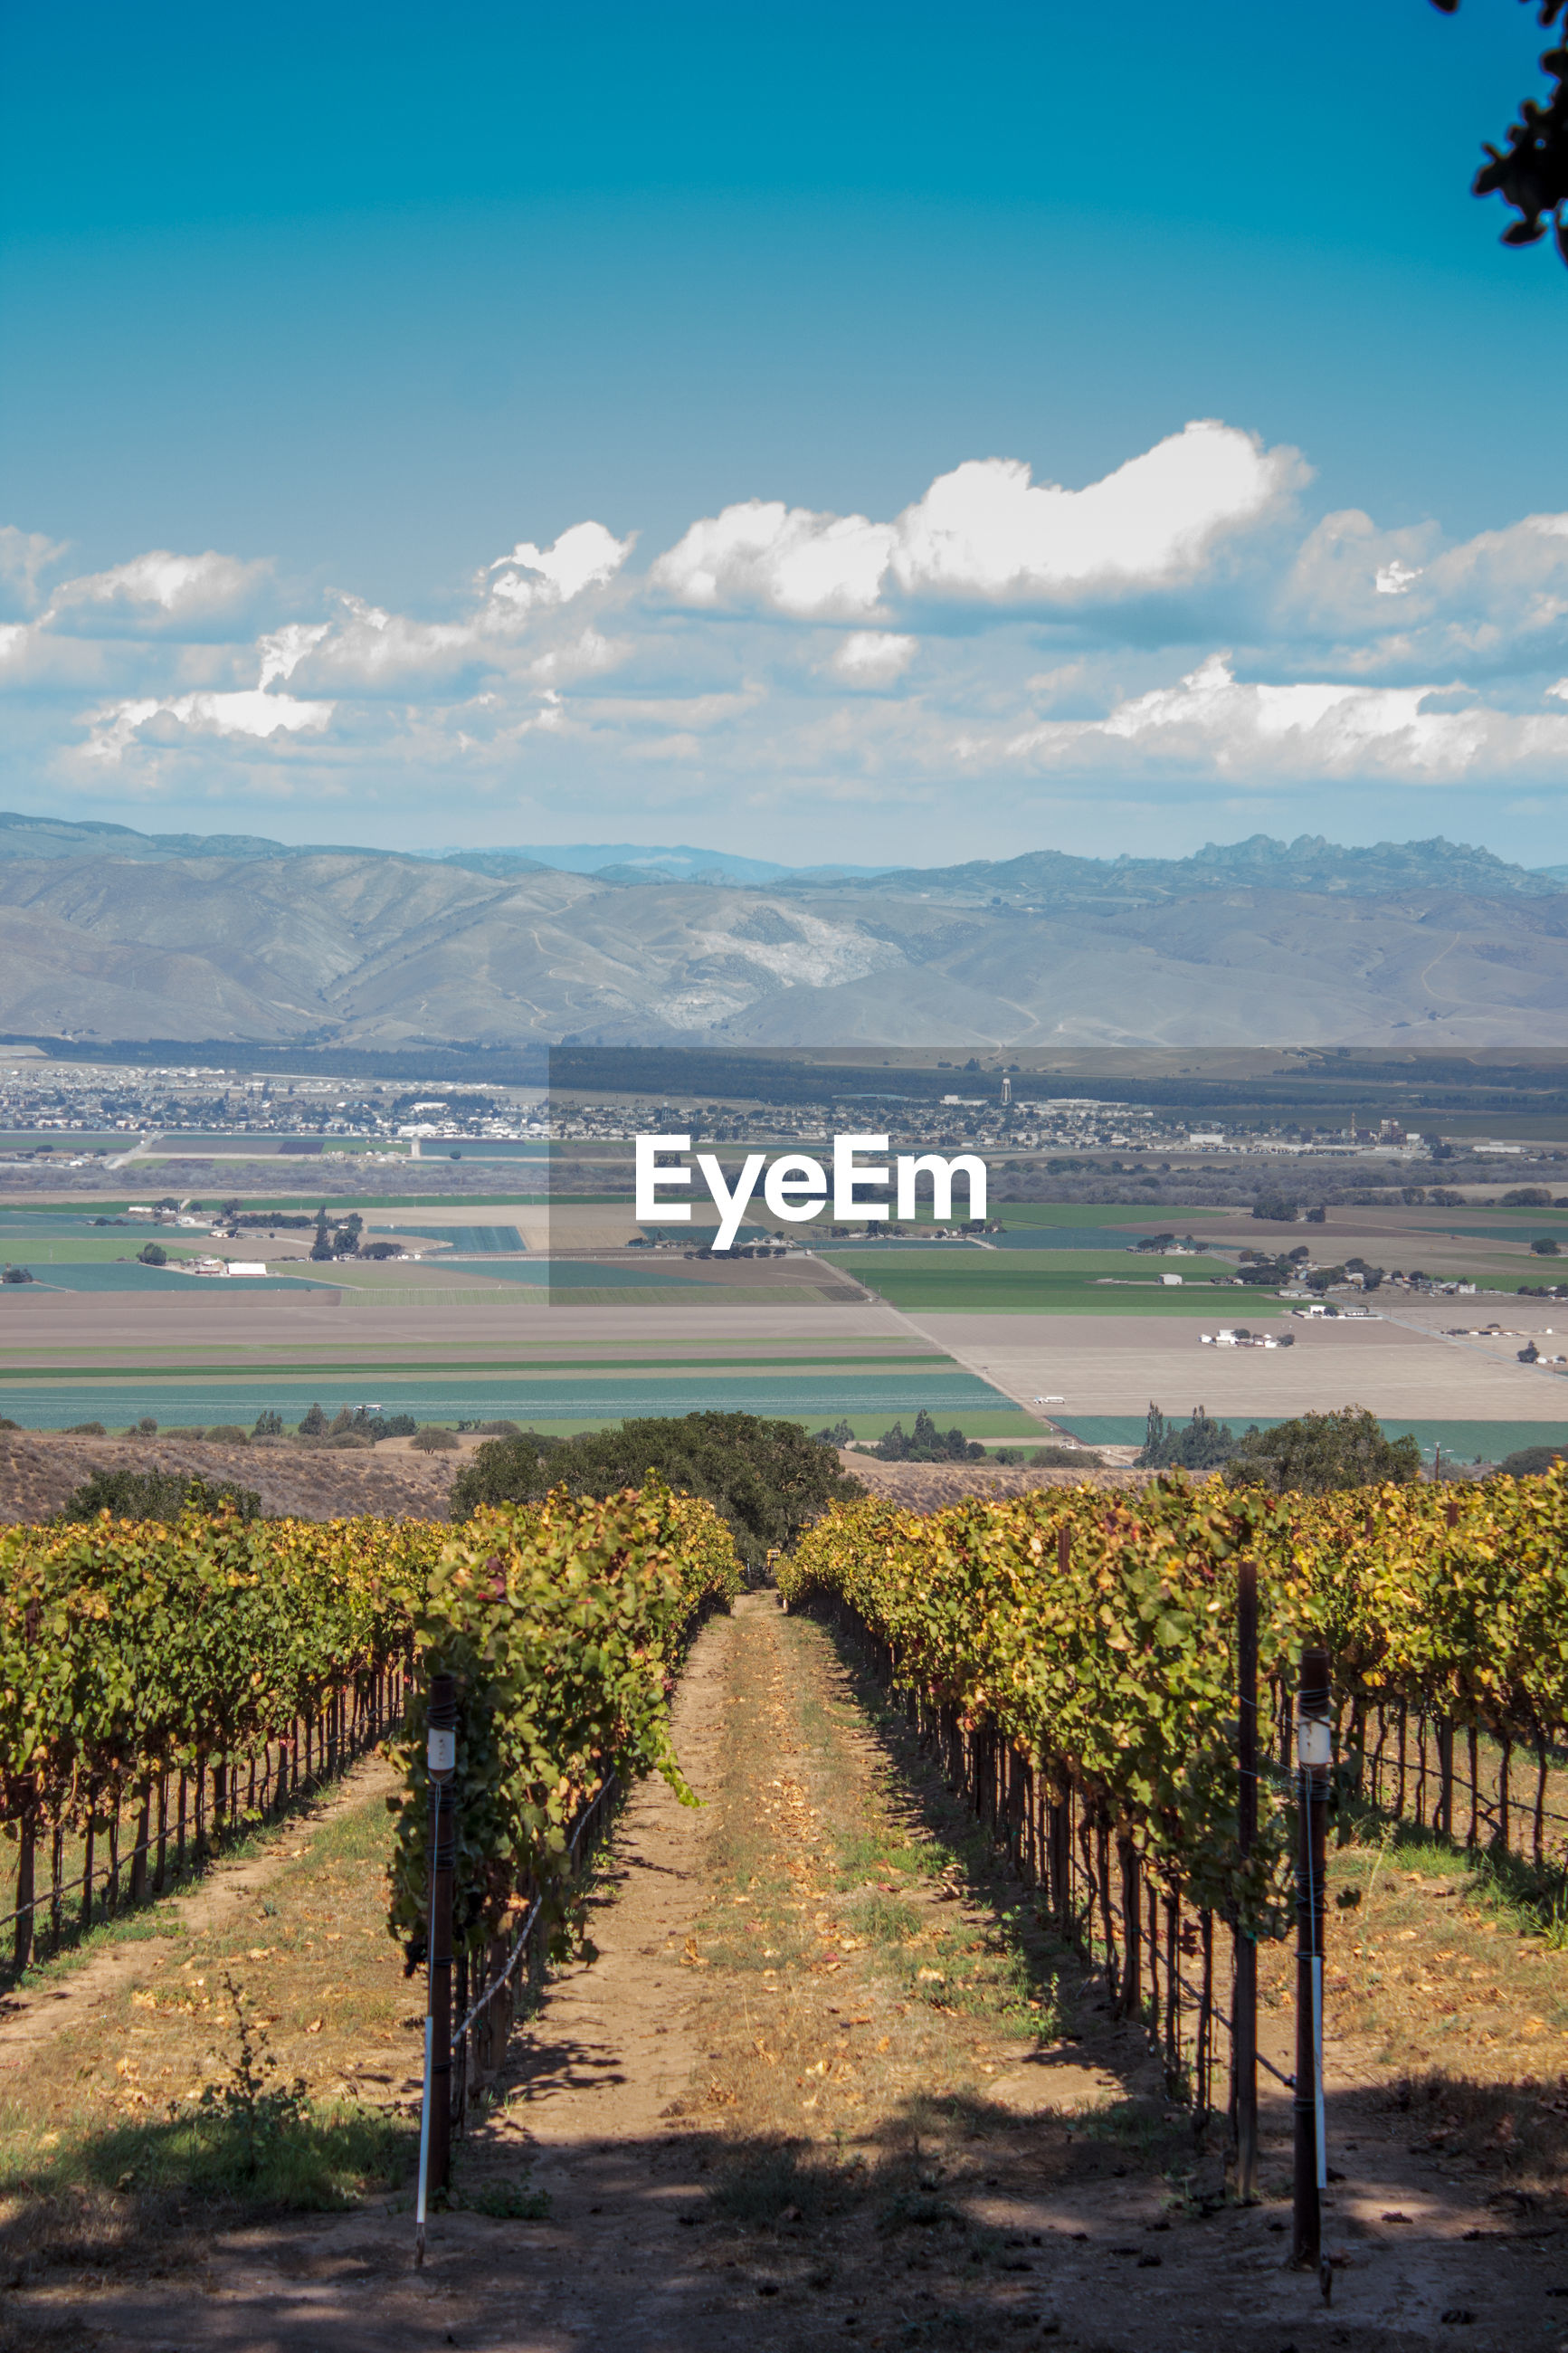 SCENIC VIEW OF VINEYARD AND LANDSCAPE AGAINST SKY